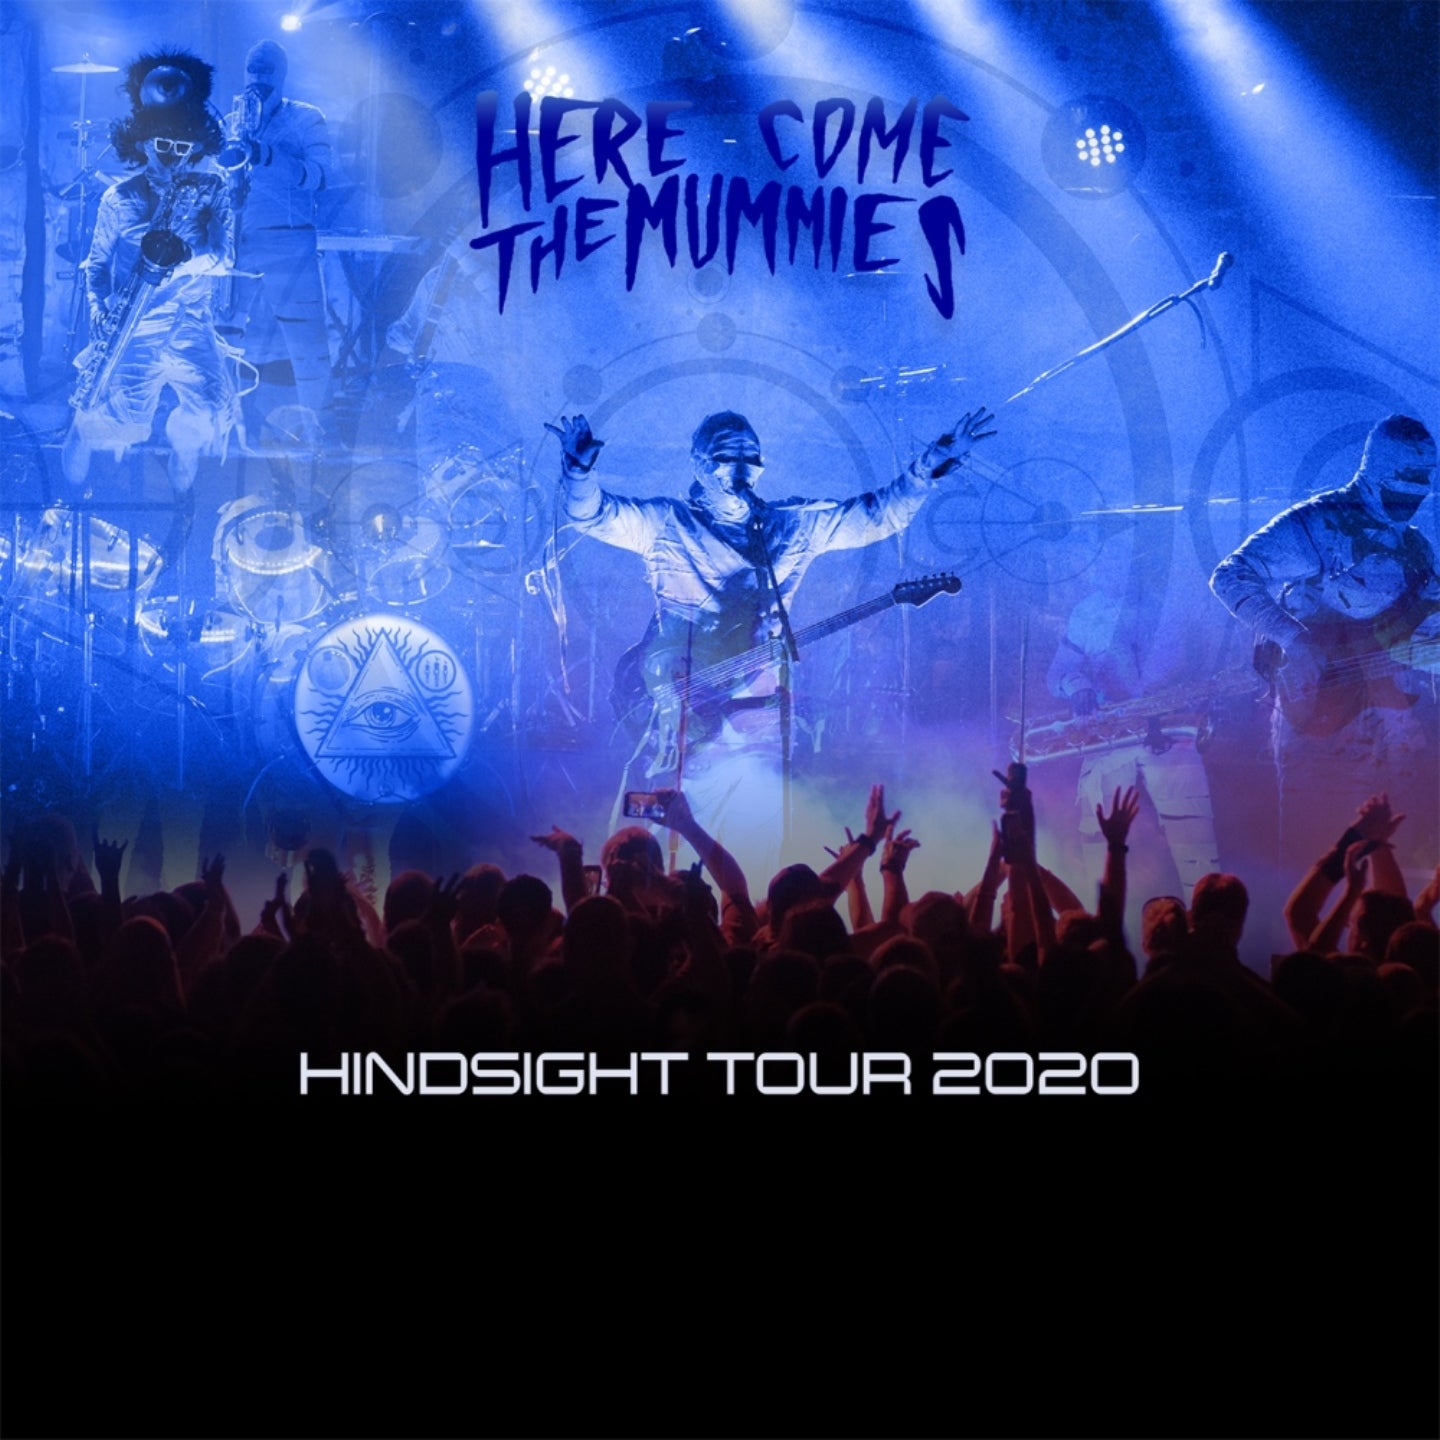 Here Come The Mummies - Hindsight Tour 2020